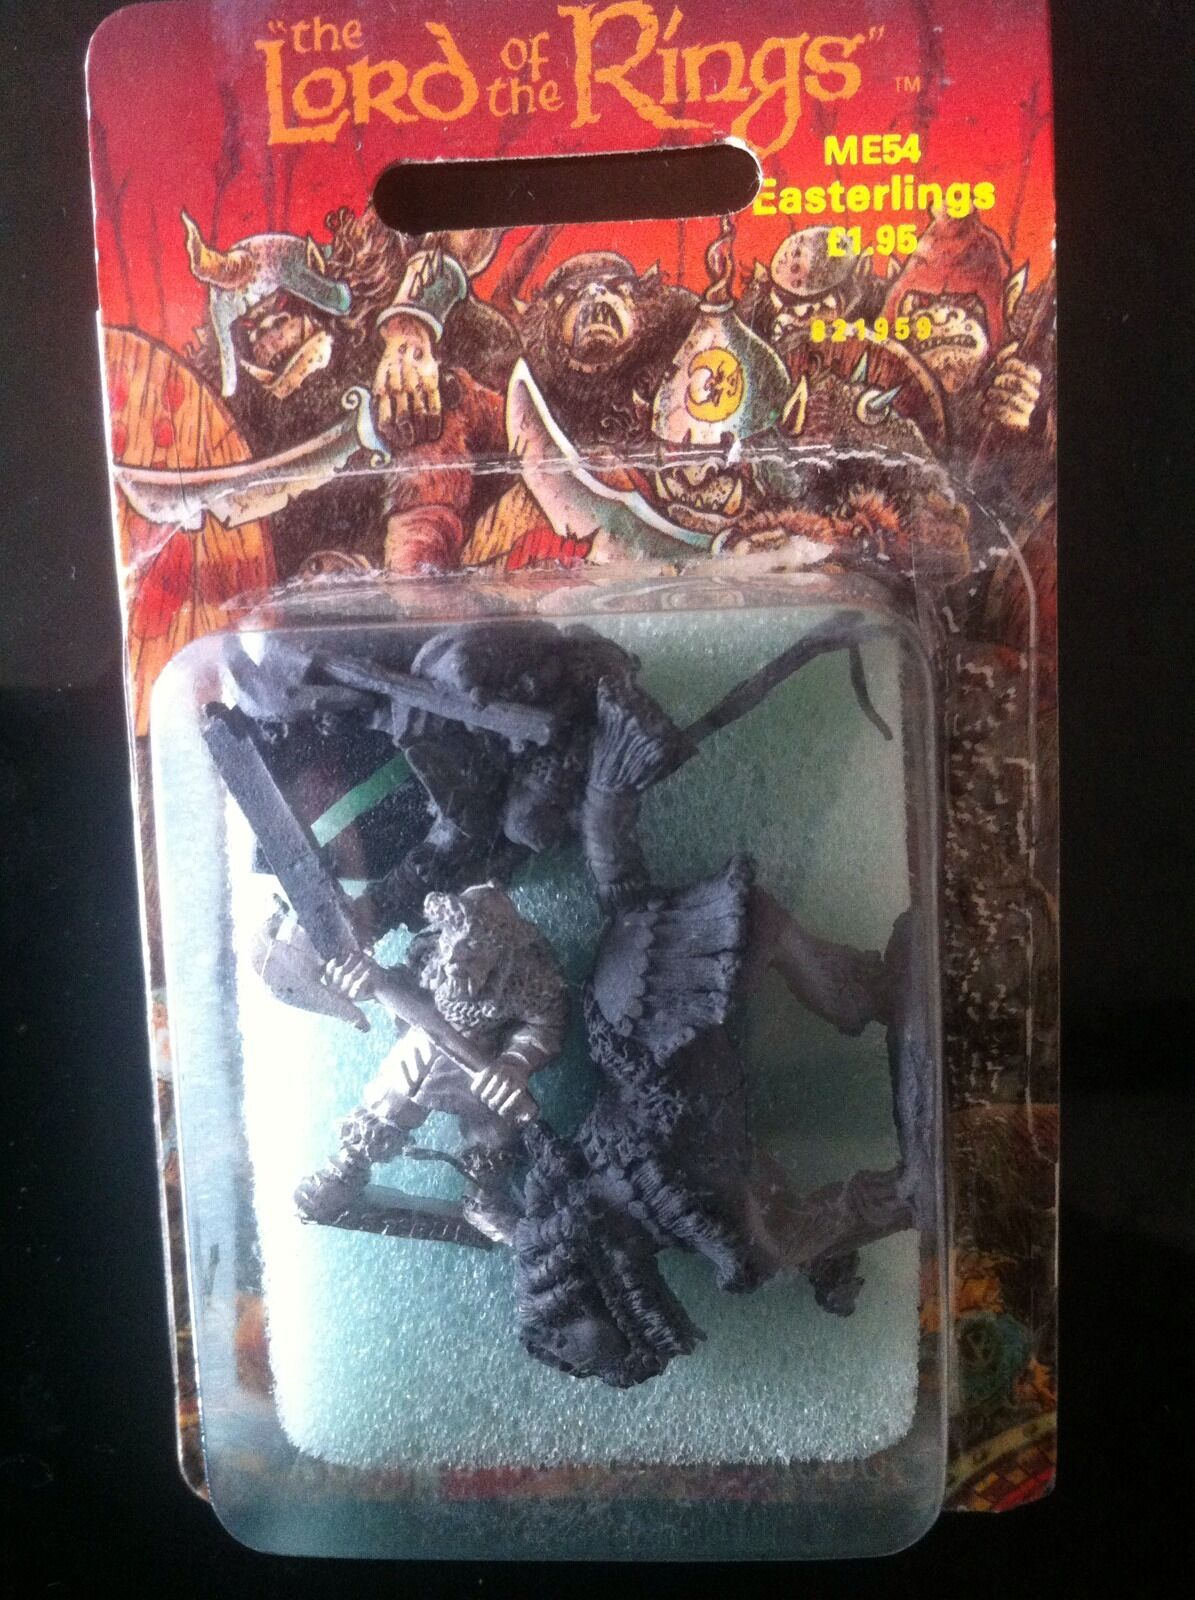 LOTR ME54 Easterlings Citadel New OOP Games Workshop